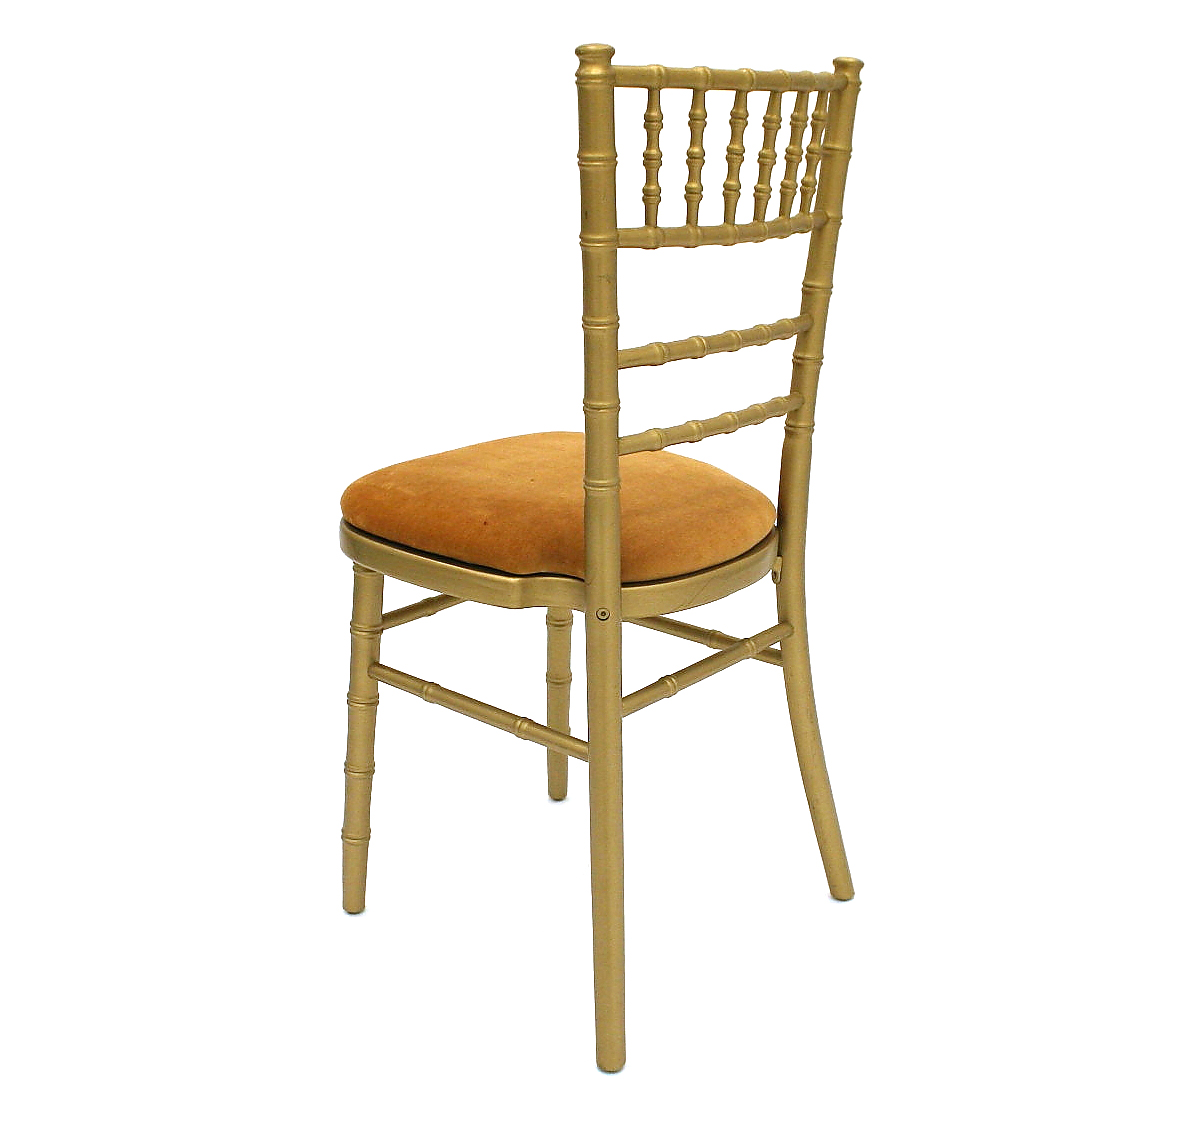 Gold Chivari Chair Hire Weddings Event Chair Hire Be